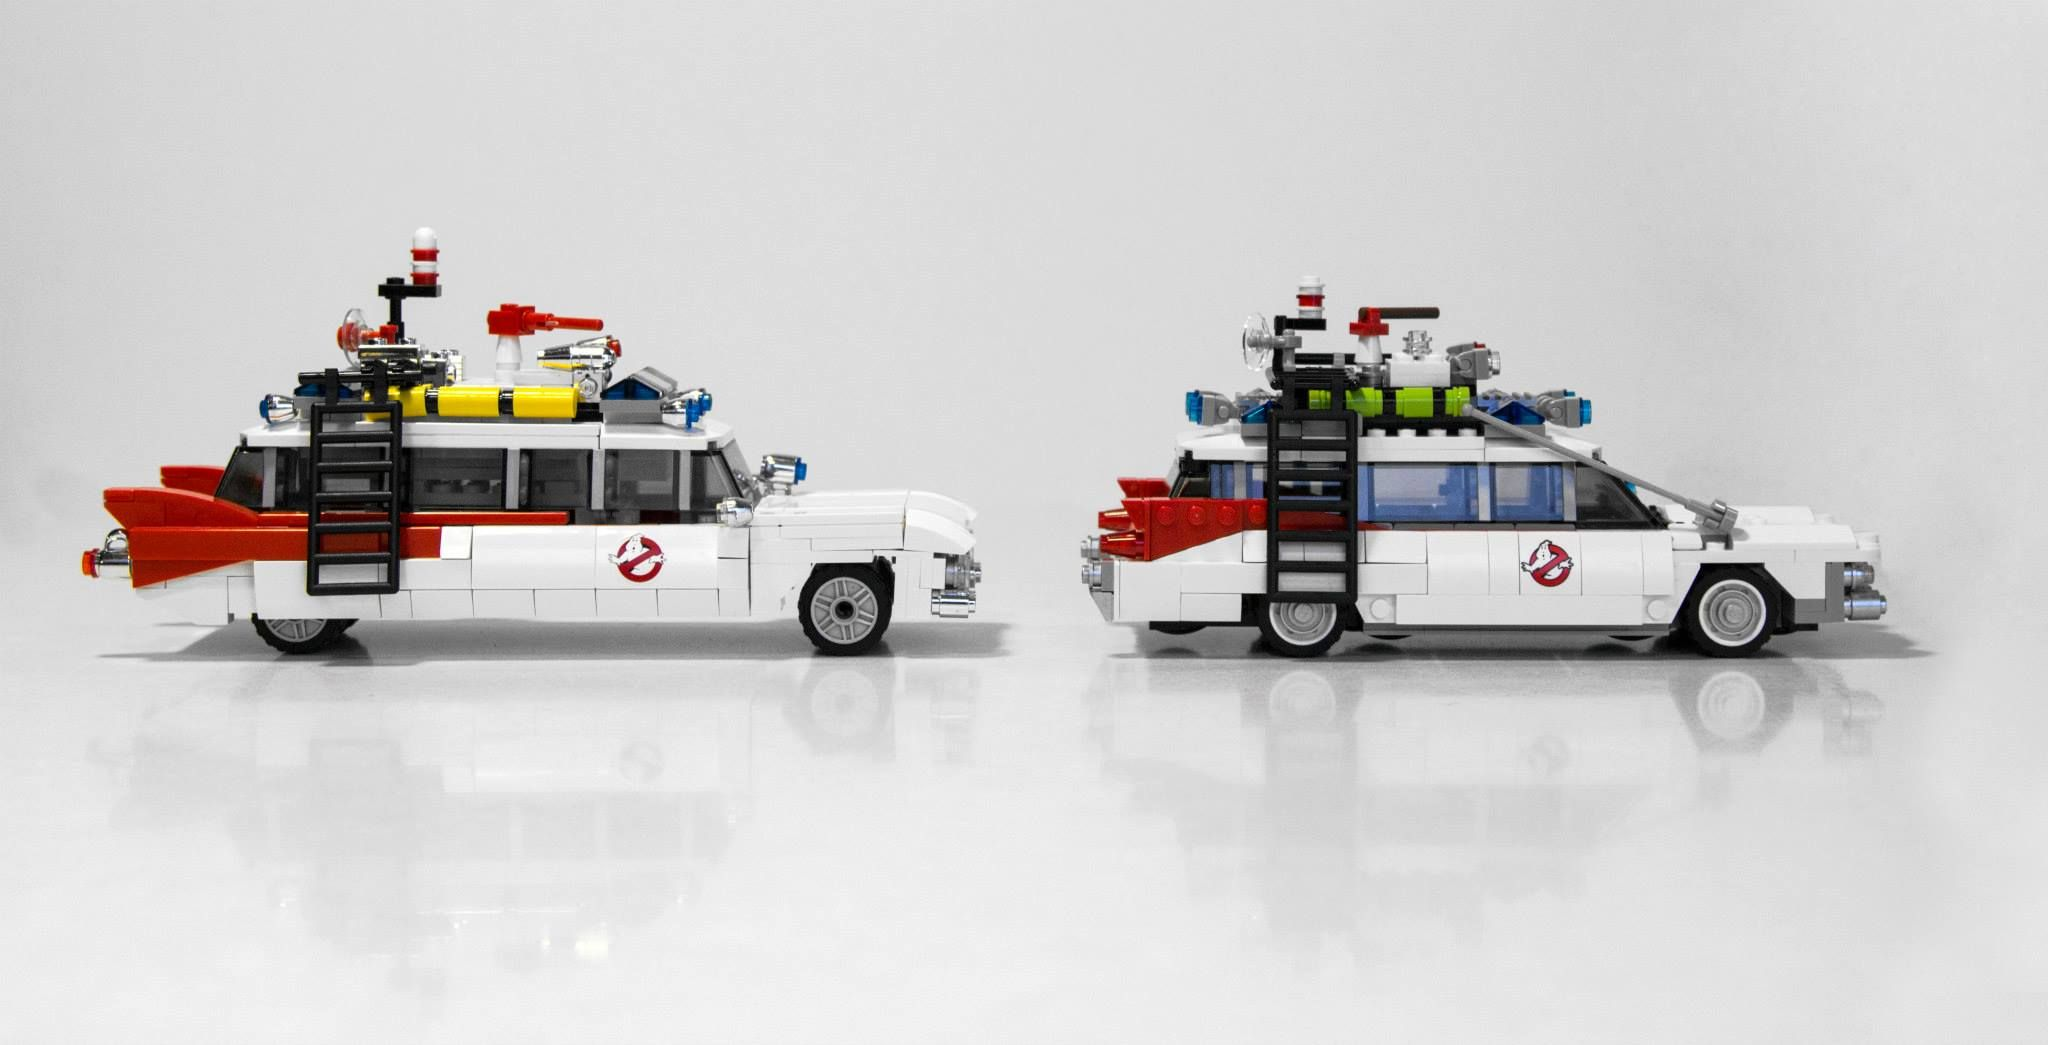 ghostbusters lego image comparison for the ecto 1 vehicle. Black Bedroom Furniture Sets. Home Design Ideas